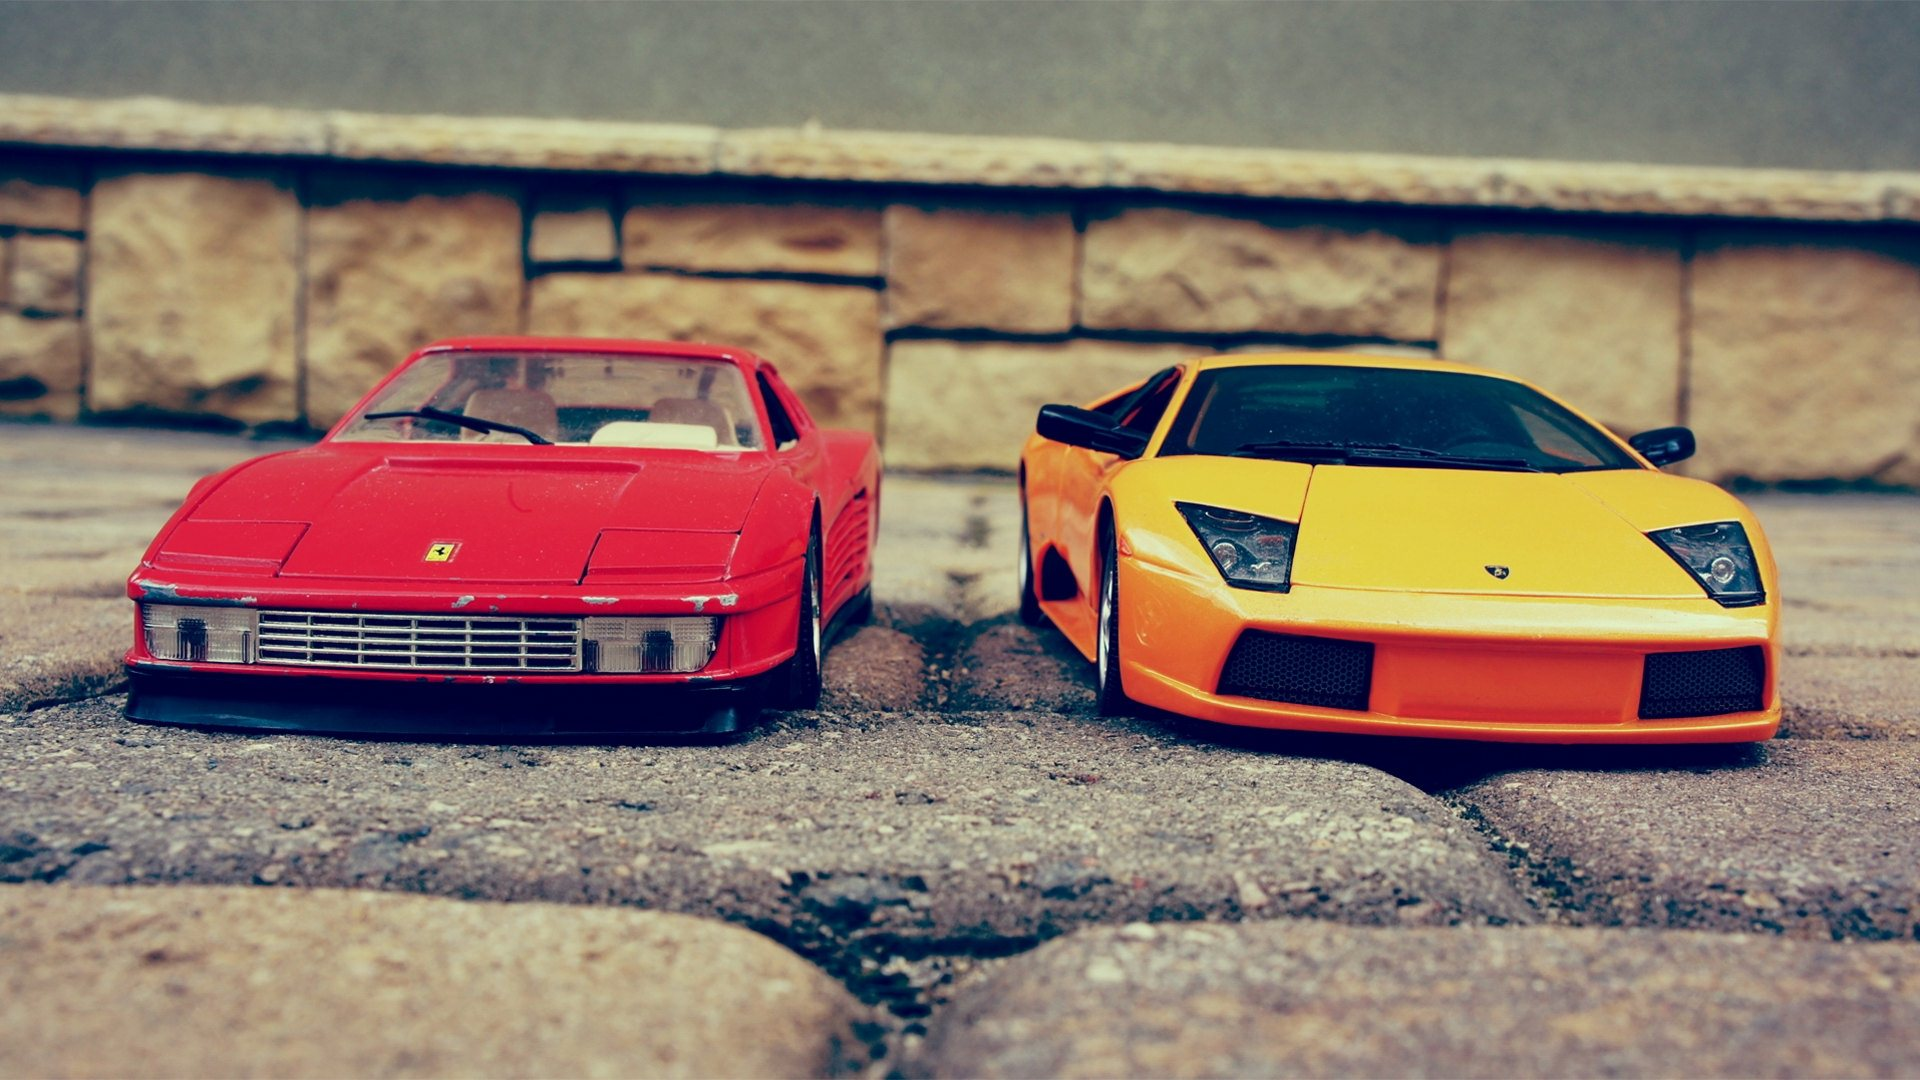 car toys wallpaper background